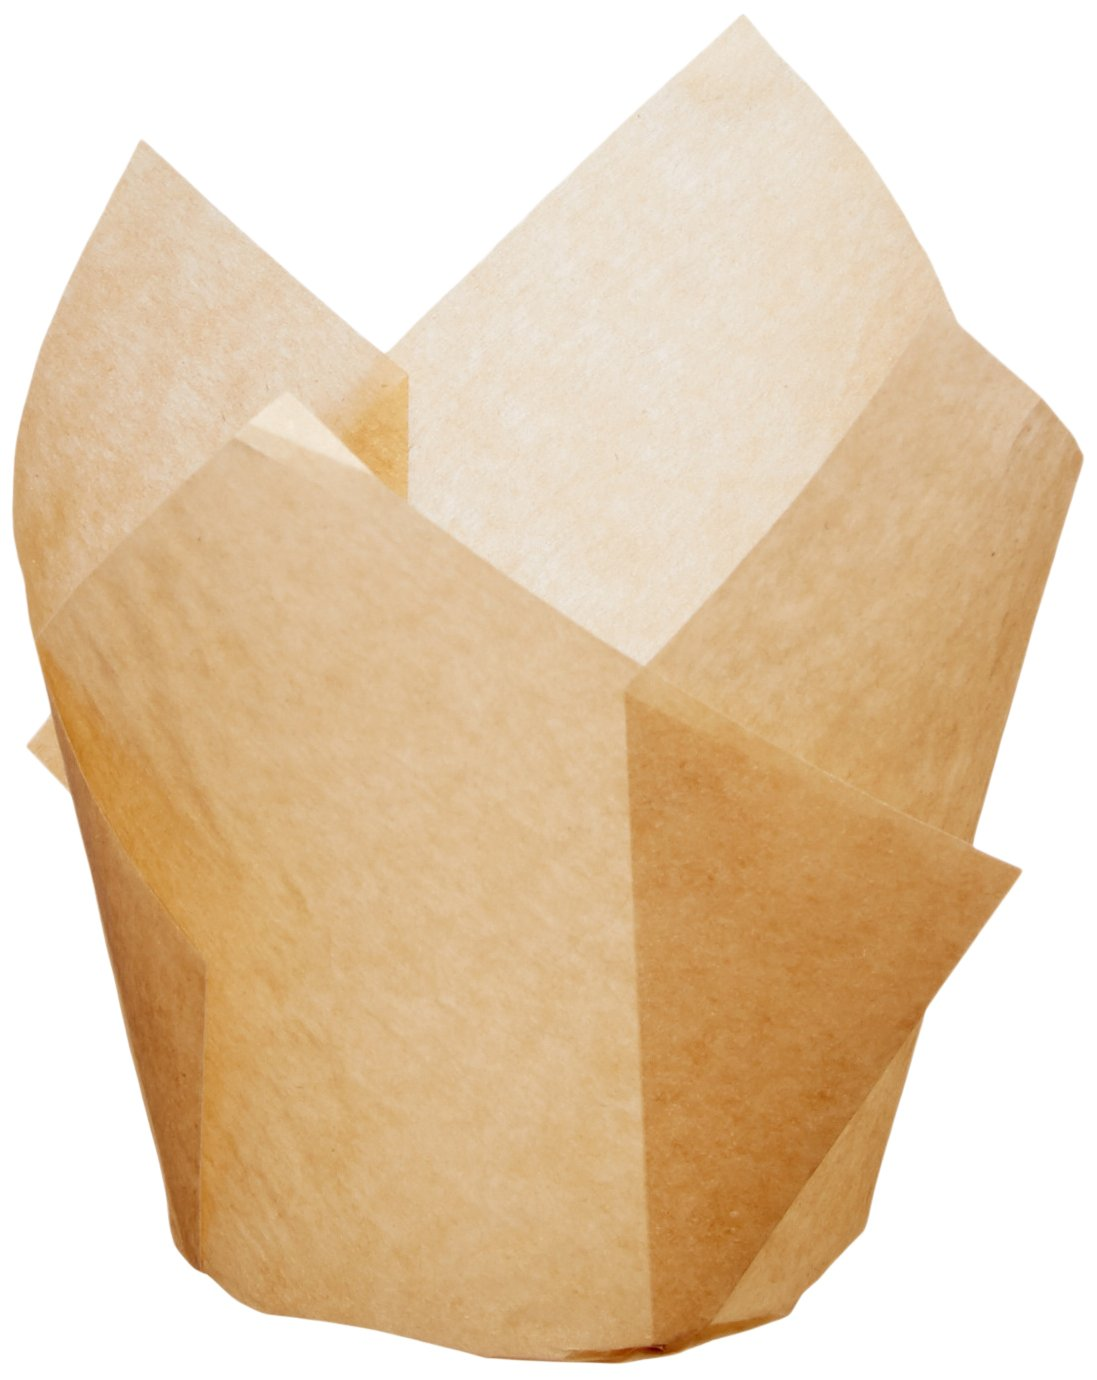 Hoffmaster 611120 Tulip Cup Cupcake Wrapper/Baking Cup, 2'' Diameter x 3-1/2'' Height, Small, Natural (4 Packs of 250)